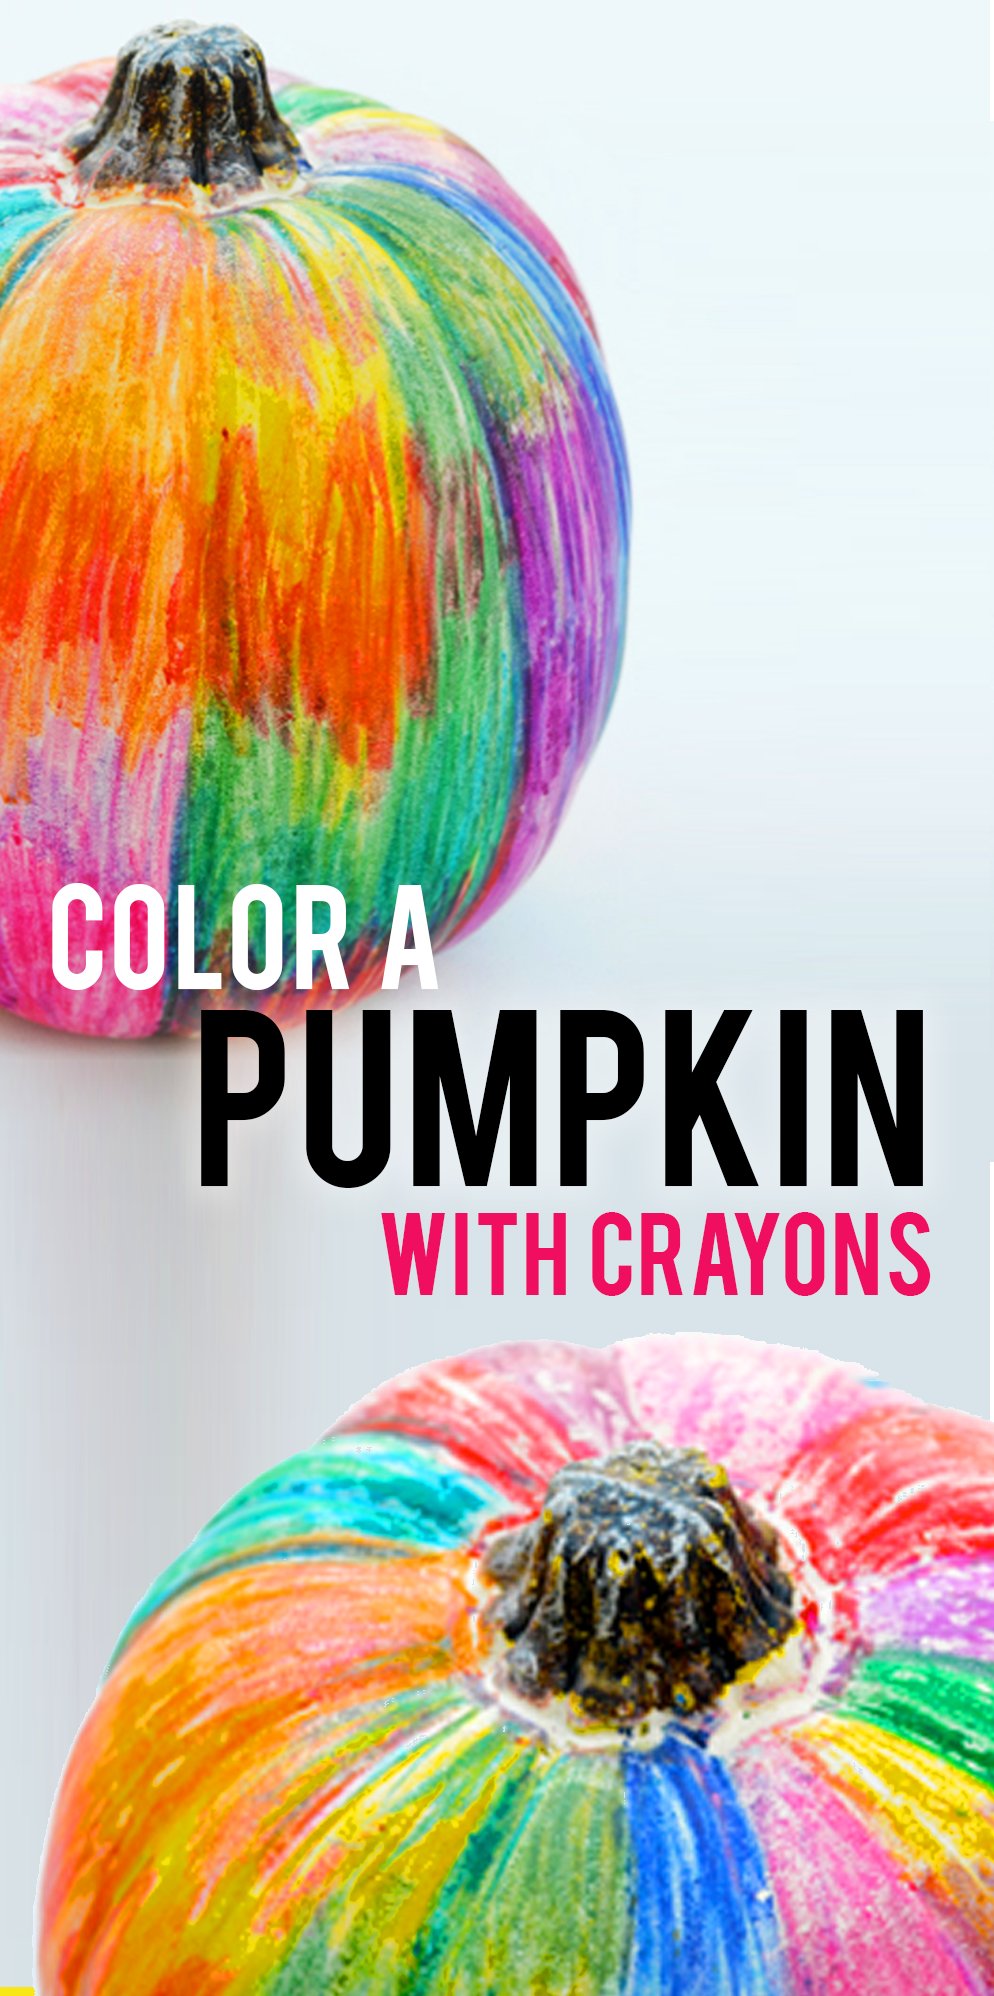 make-your-own-crayon-pumpkin-6